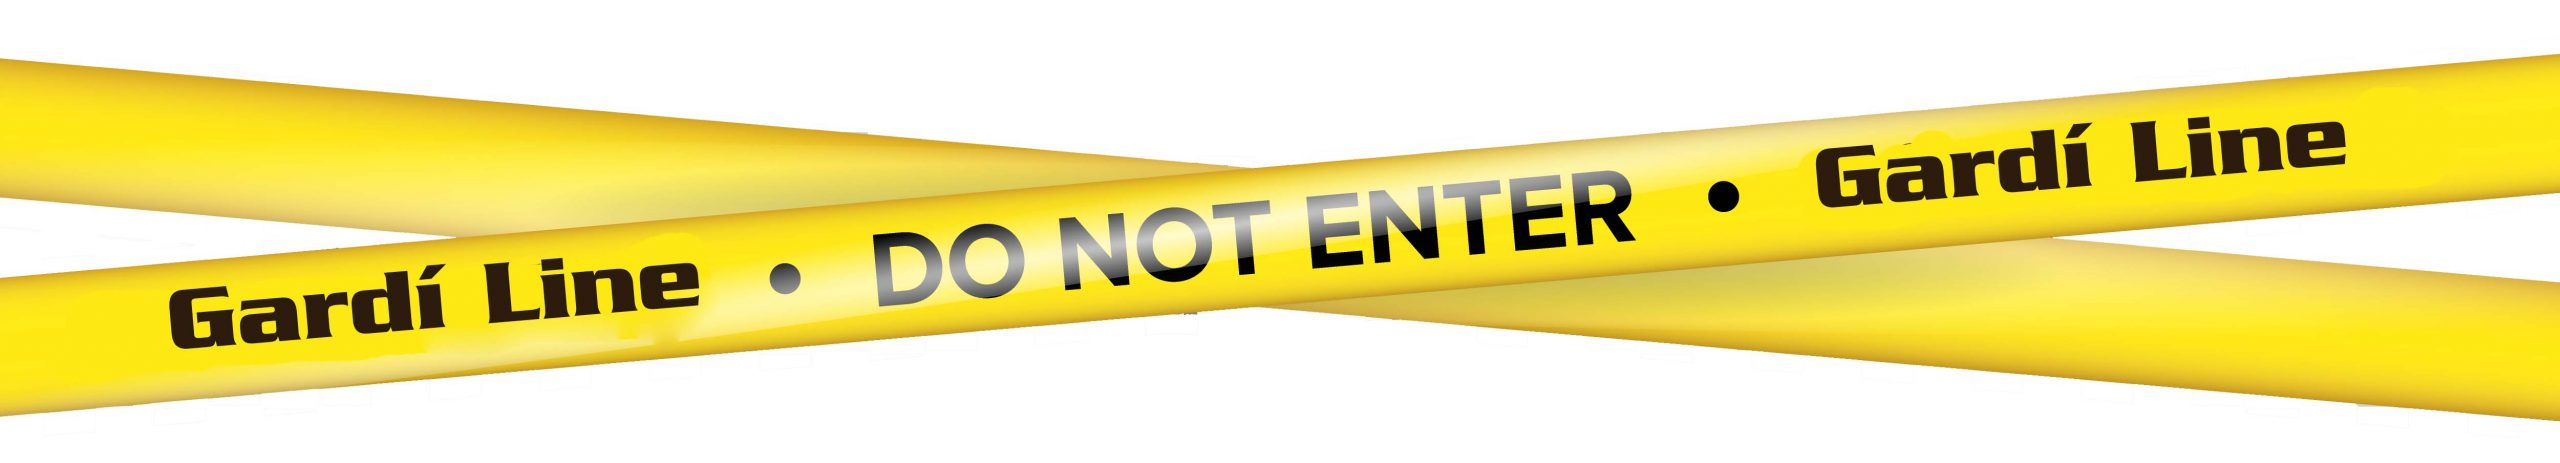 Yellow With Black Police Line. Do Not Enter, Danger. Security Quarantine Tapes. Isolated On Transparent Background. Vector